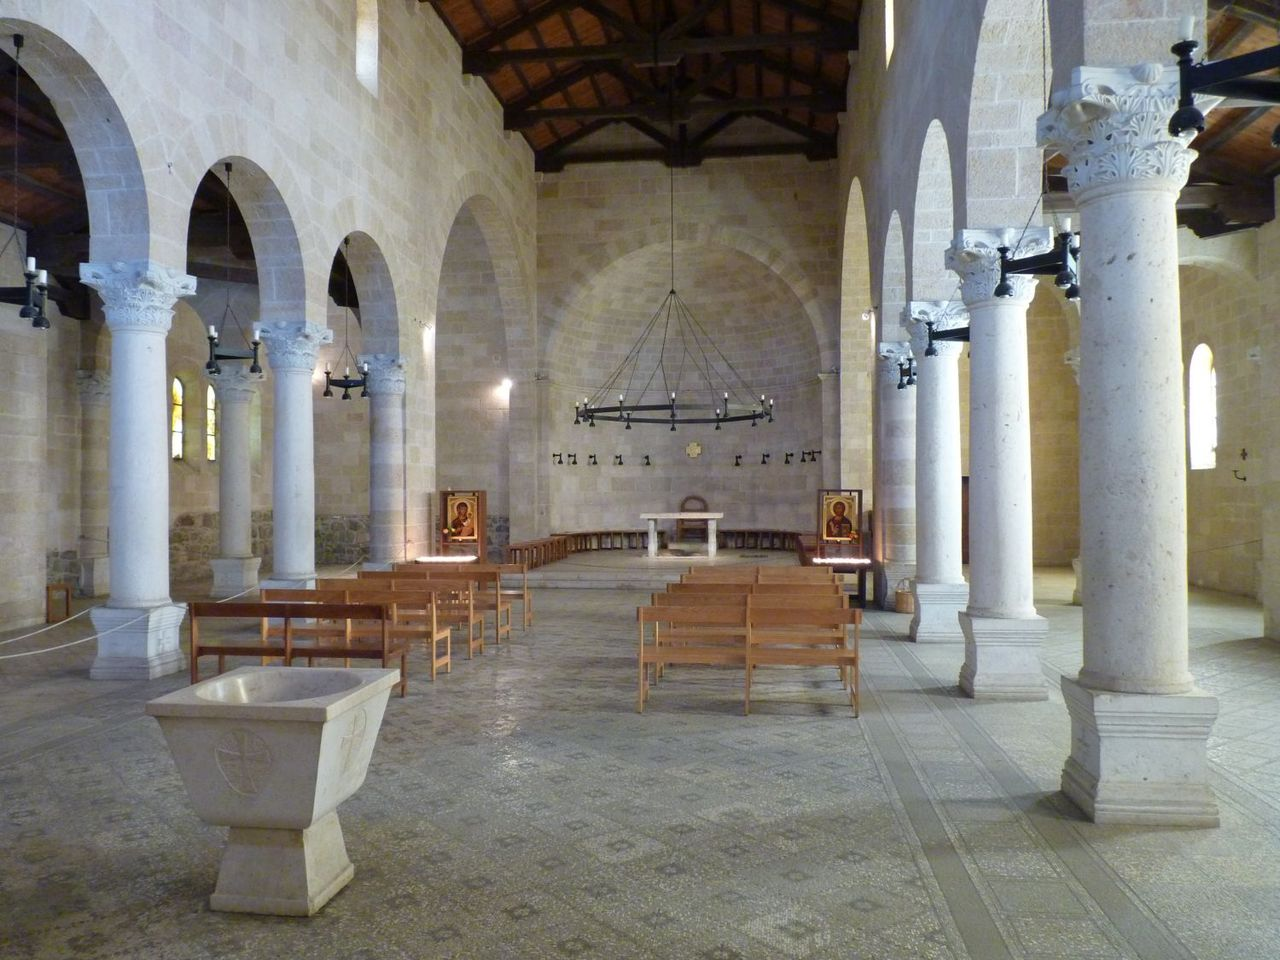 Inside the Church of the Multiplication of the Loaves and Fishes